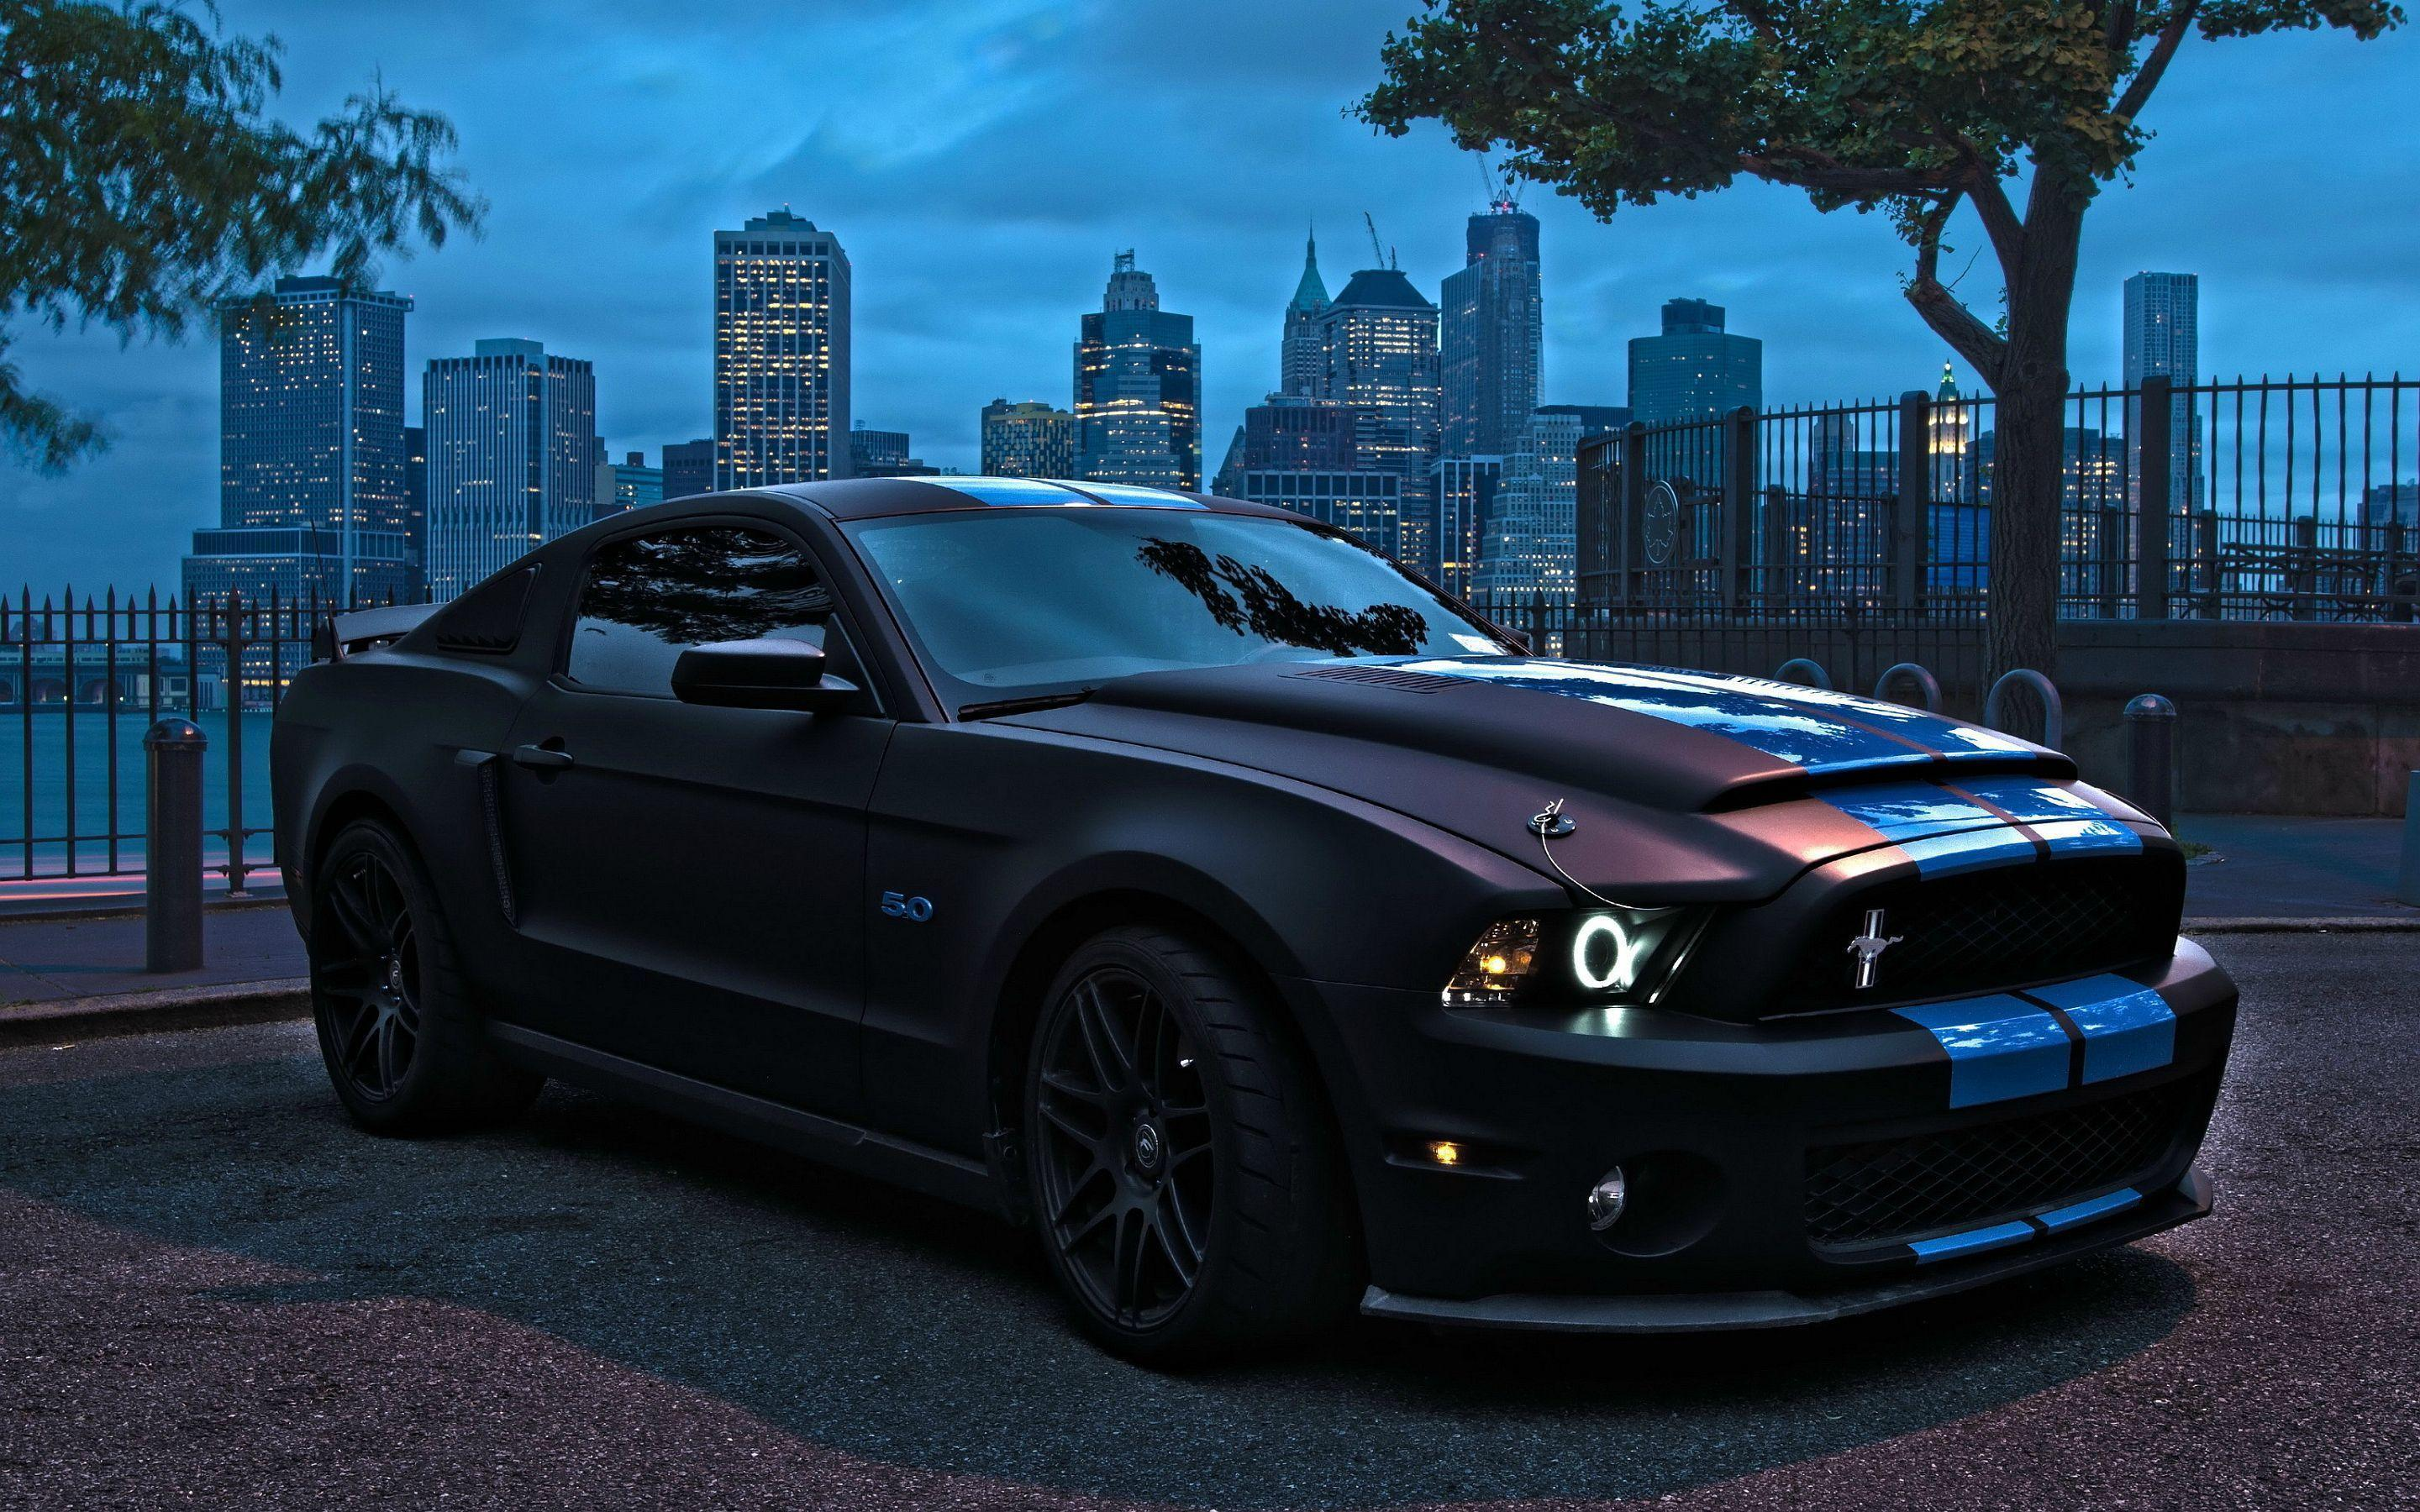 Best Ford Mustang Shelby Wallpapers HD Backgrounds